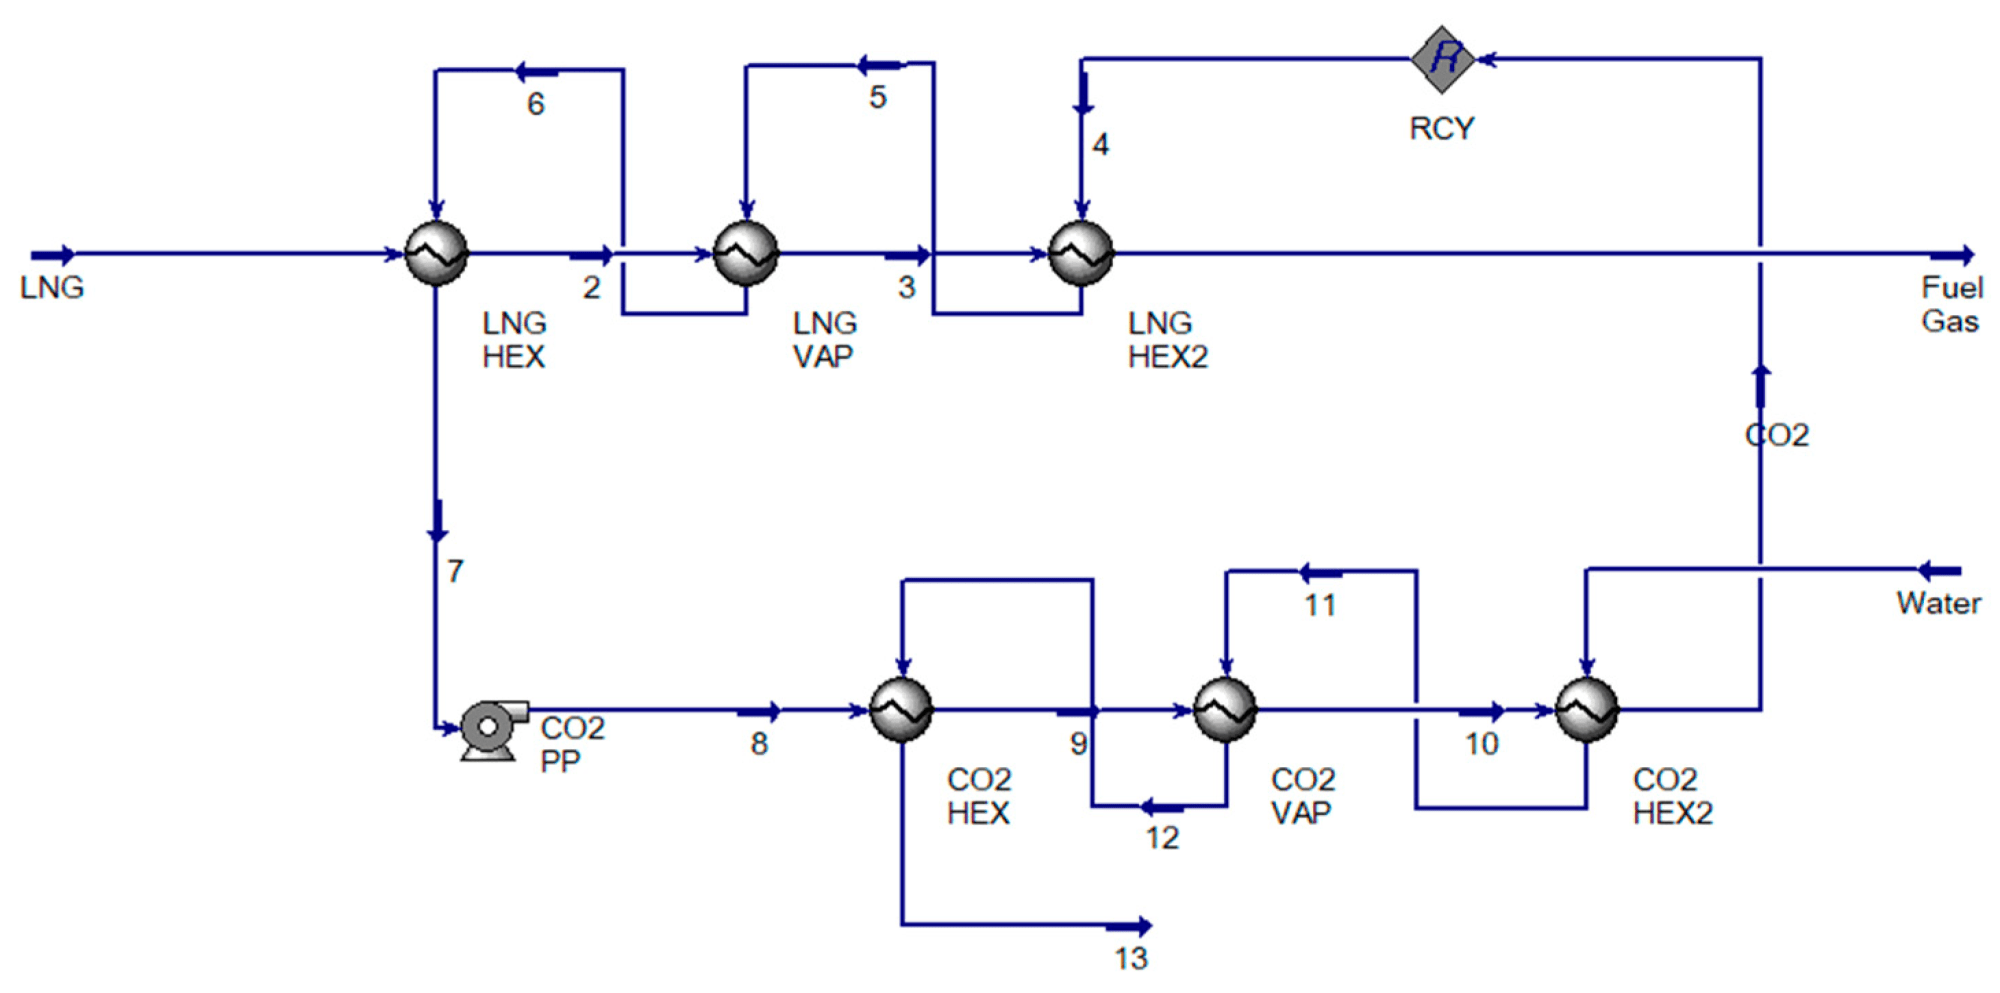 hight resolution of jmse 07 00184 g002 figure 2 schematic diagram of the co2 system